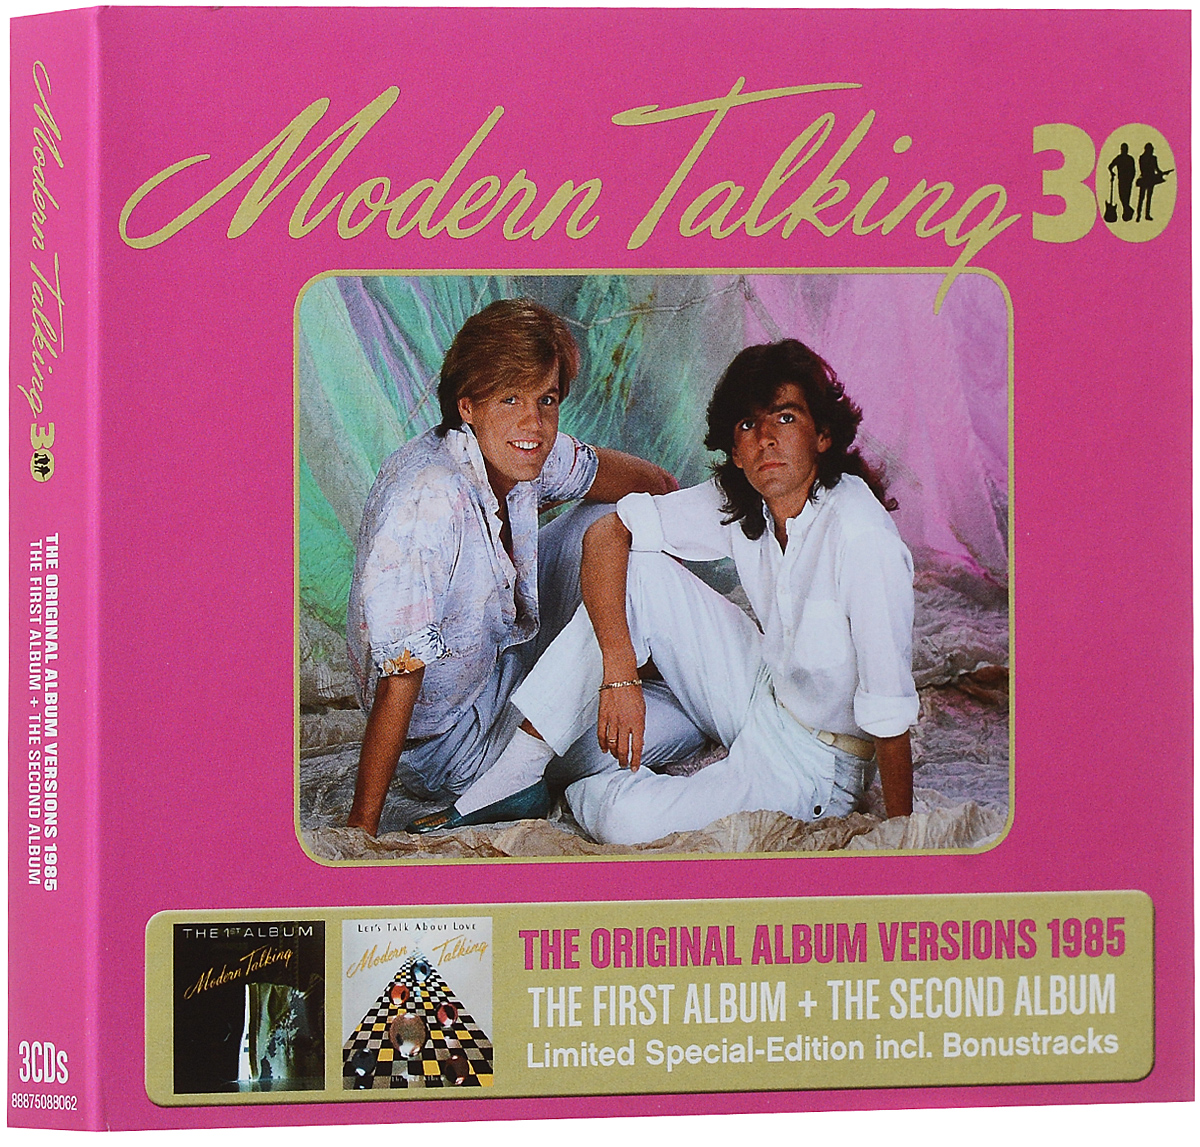 Modern Talking Modern Talking. The Original Album Versions 1985. Limited Special-Edition (3 CD) modern talking modern talking back for gold – the new versions